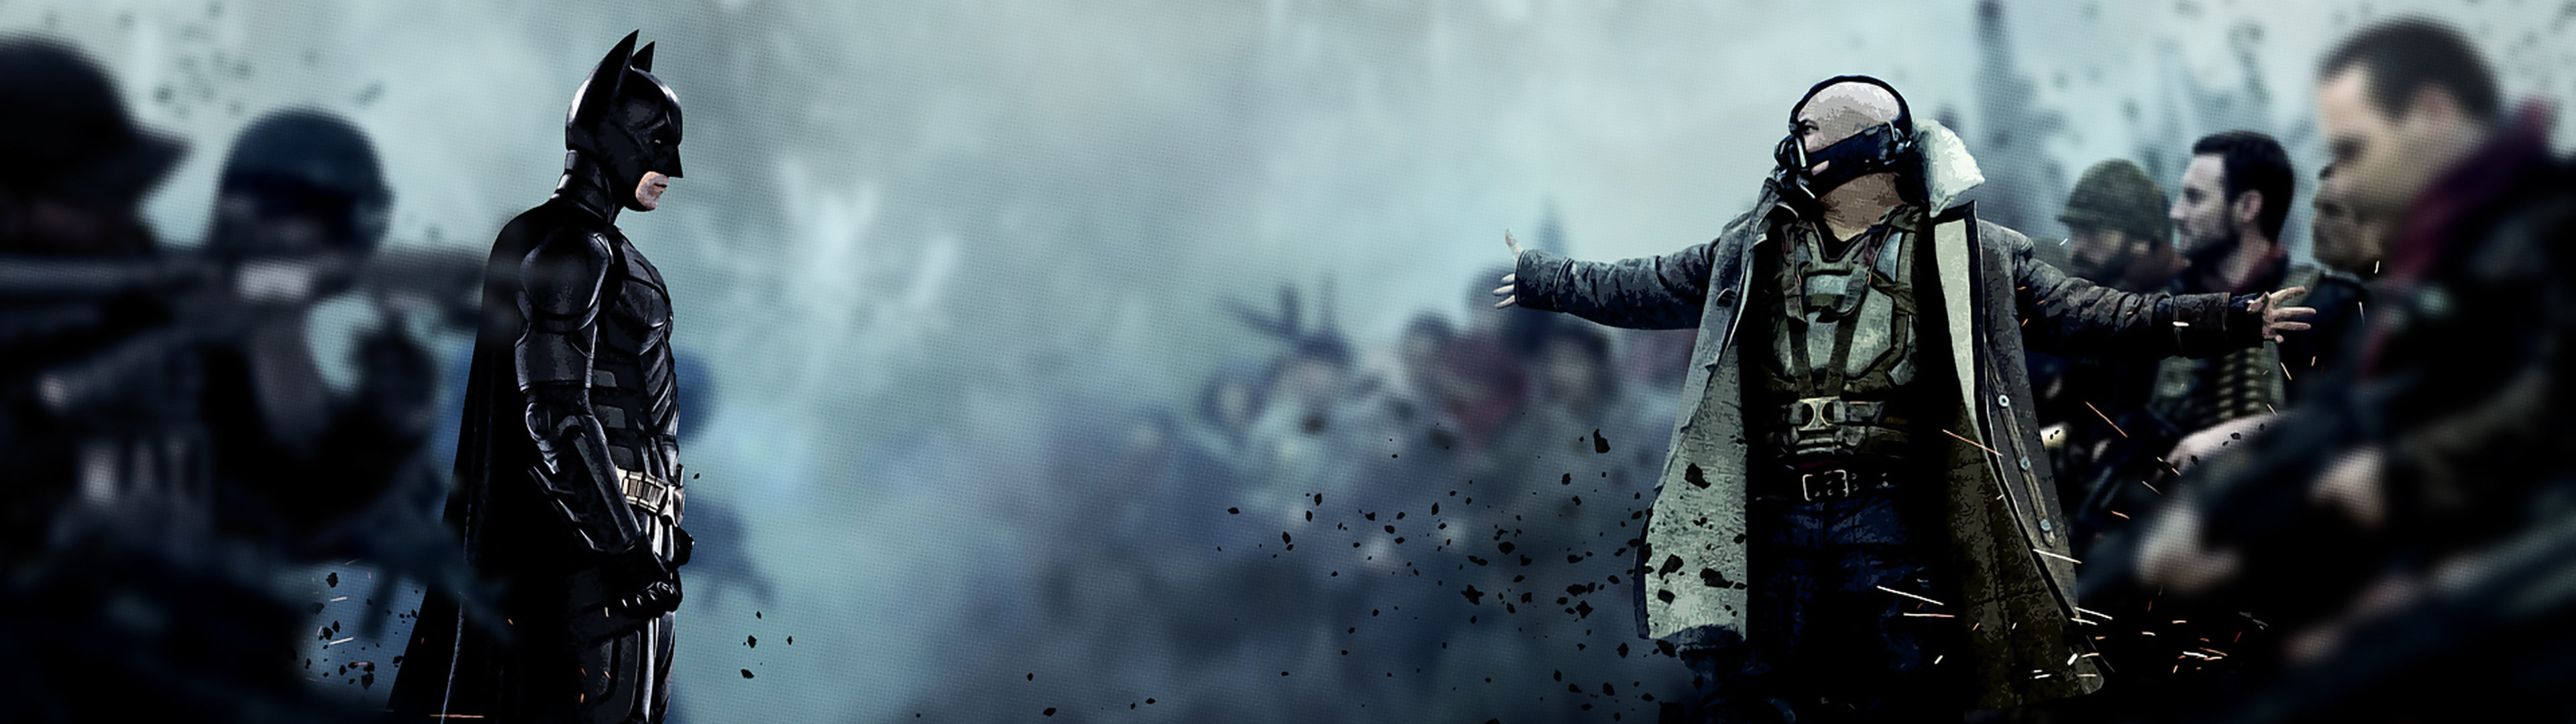 3840x1080 Awesome Dark Knight Rises Wallpaper Dual Picture 3840x1080